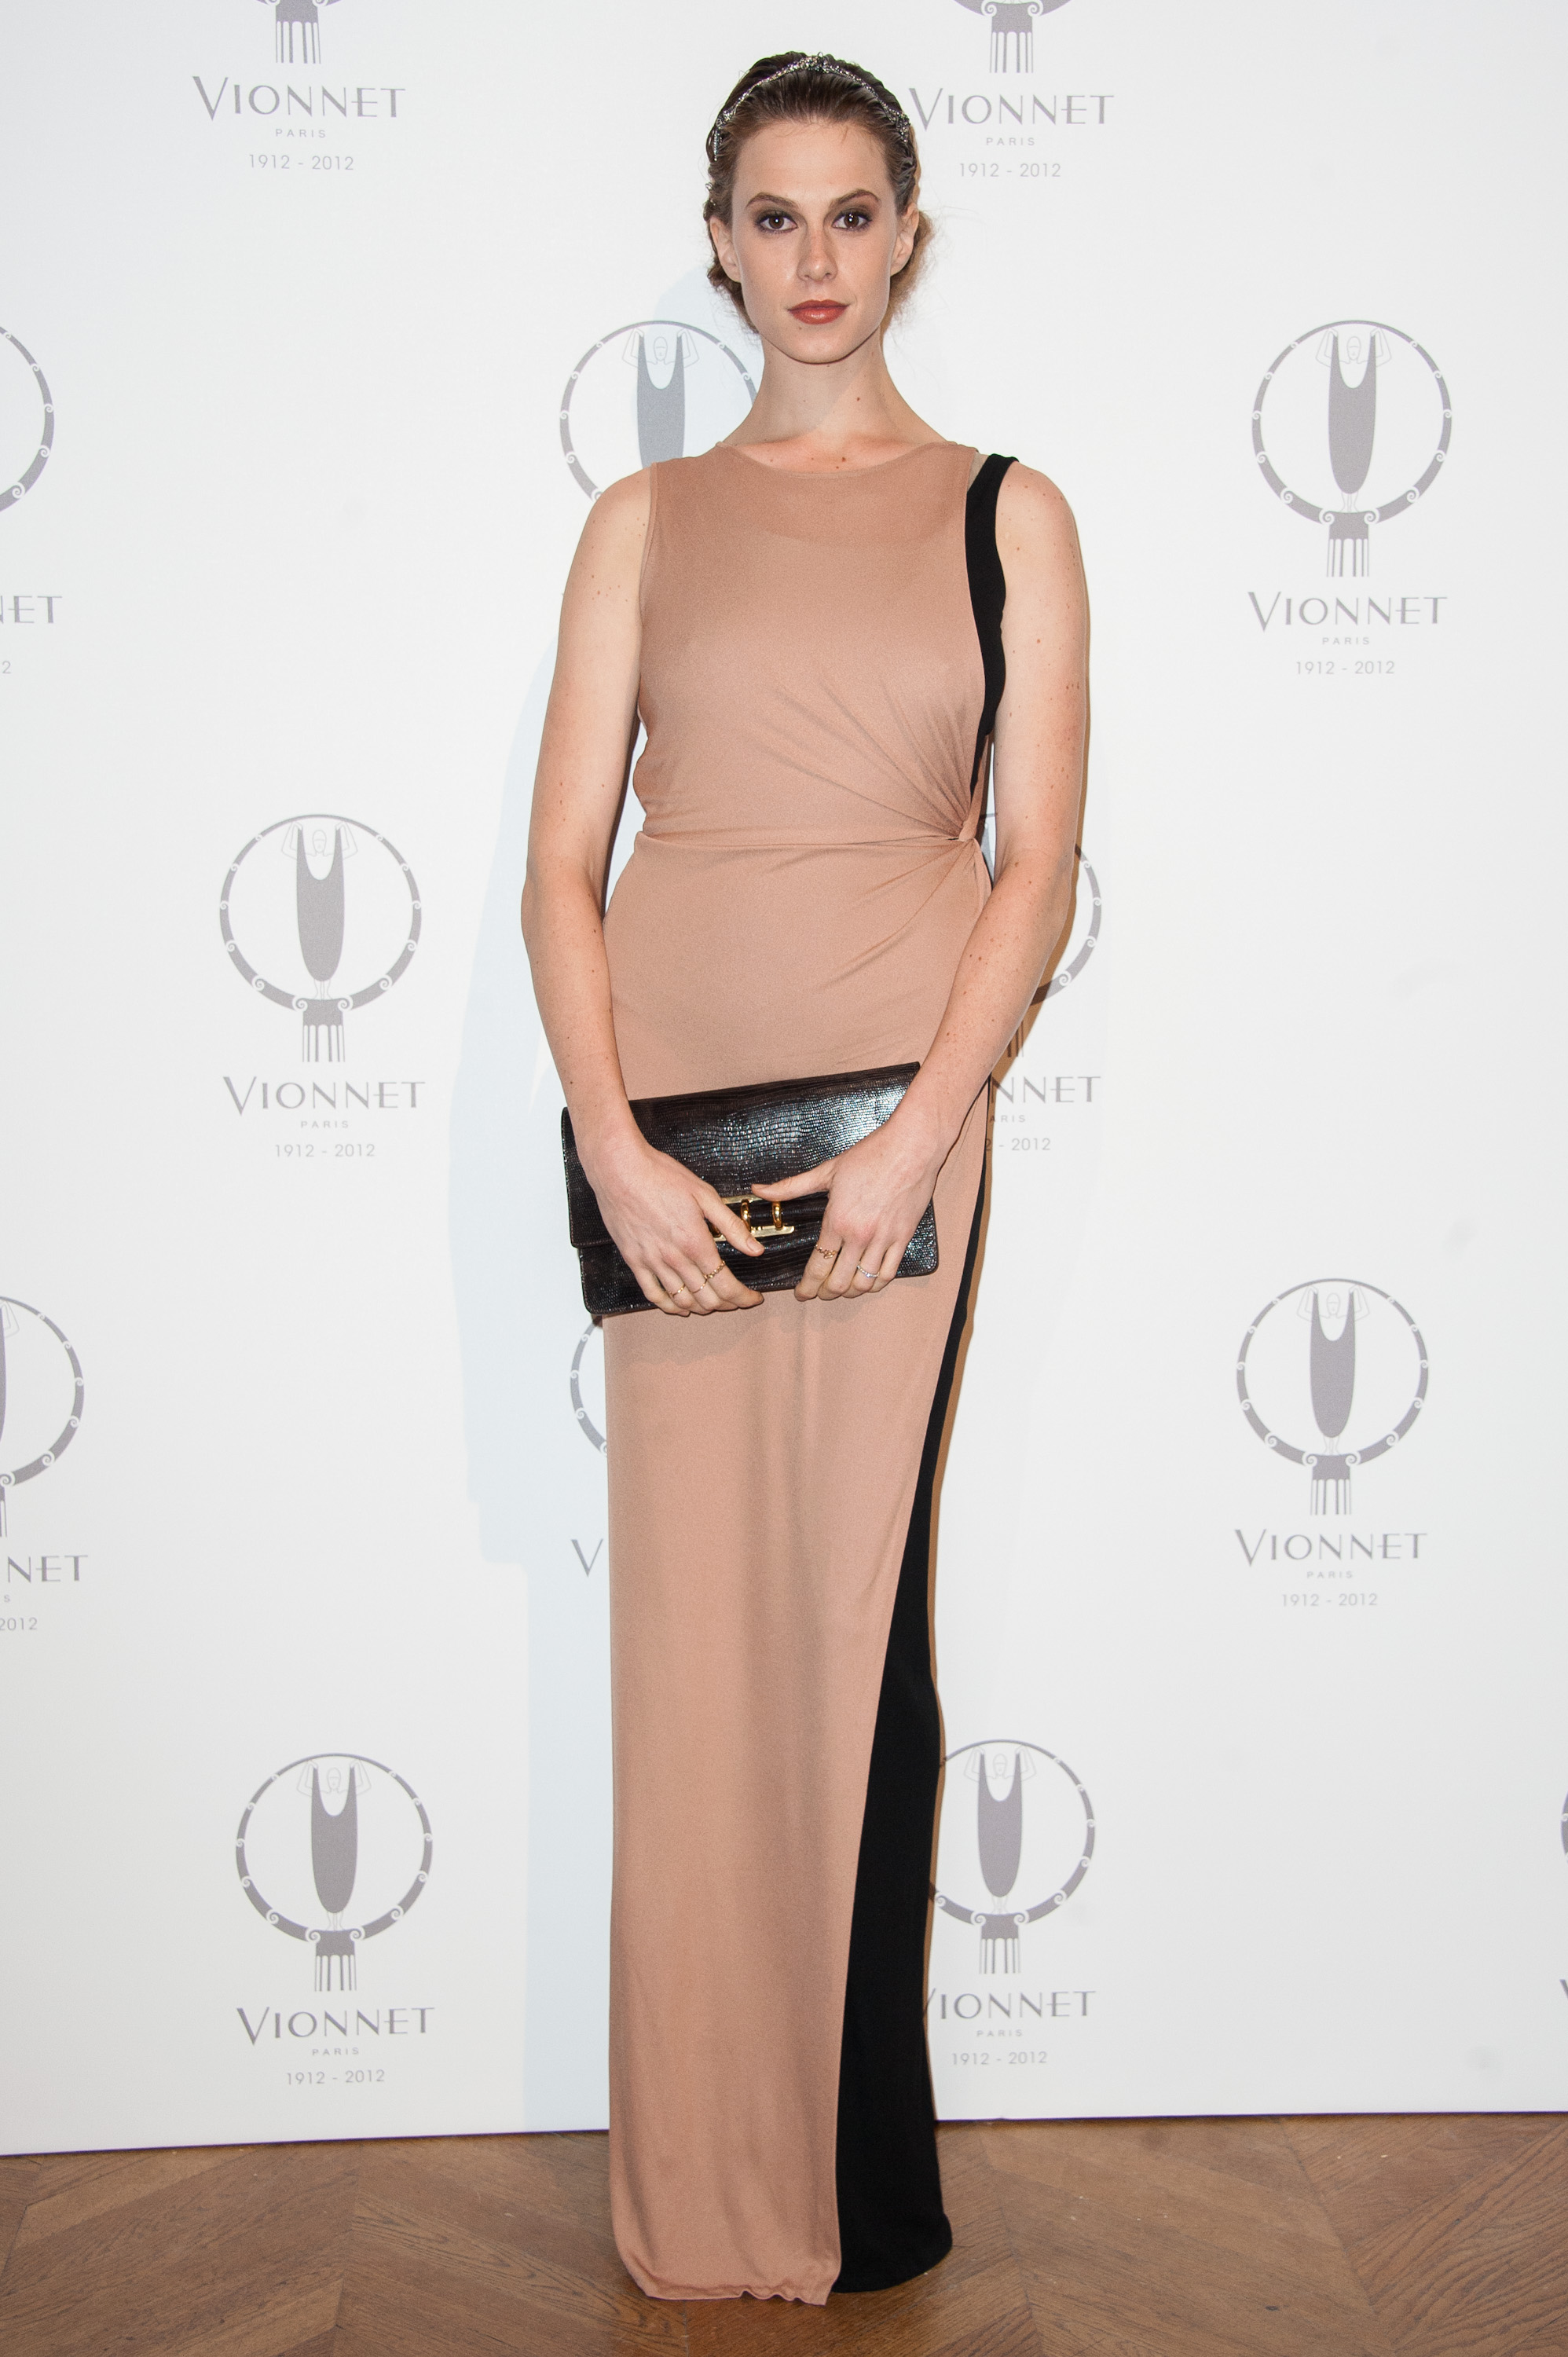 For the Vionnet 100th anniversary, Elettra Wiedemann wore a sleek nude and black floor-length gown.